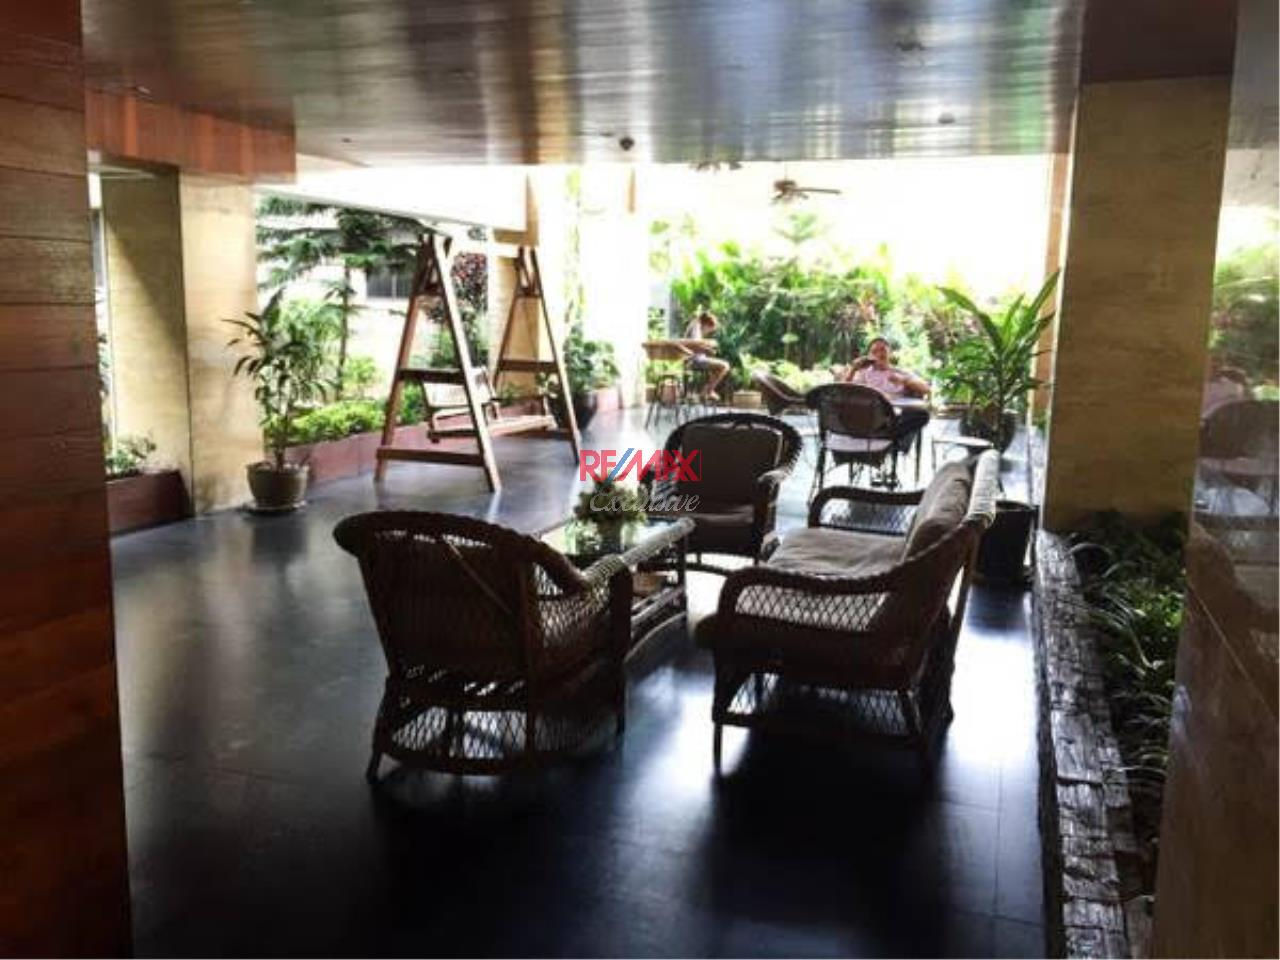 RE/MAX Exclusive Agency's Baan Saran 1 Bedroom Big Size for sale Good Price 4200000 THB 23